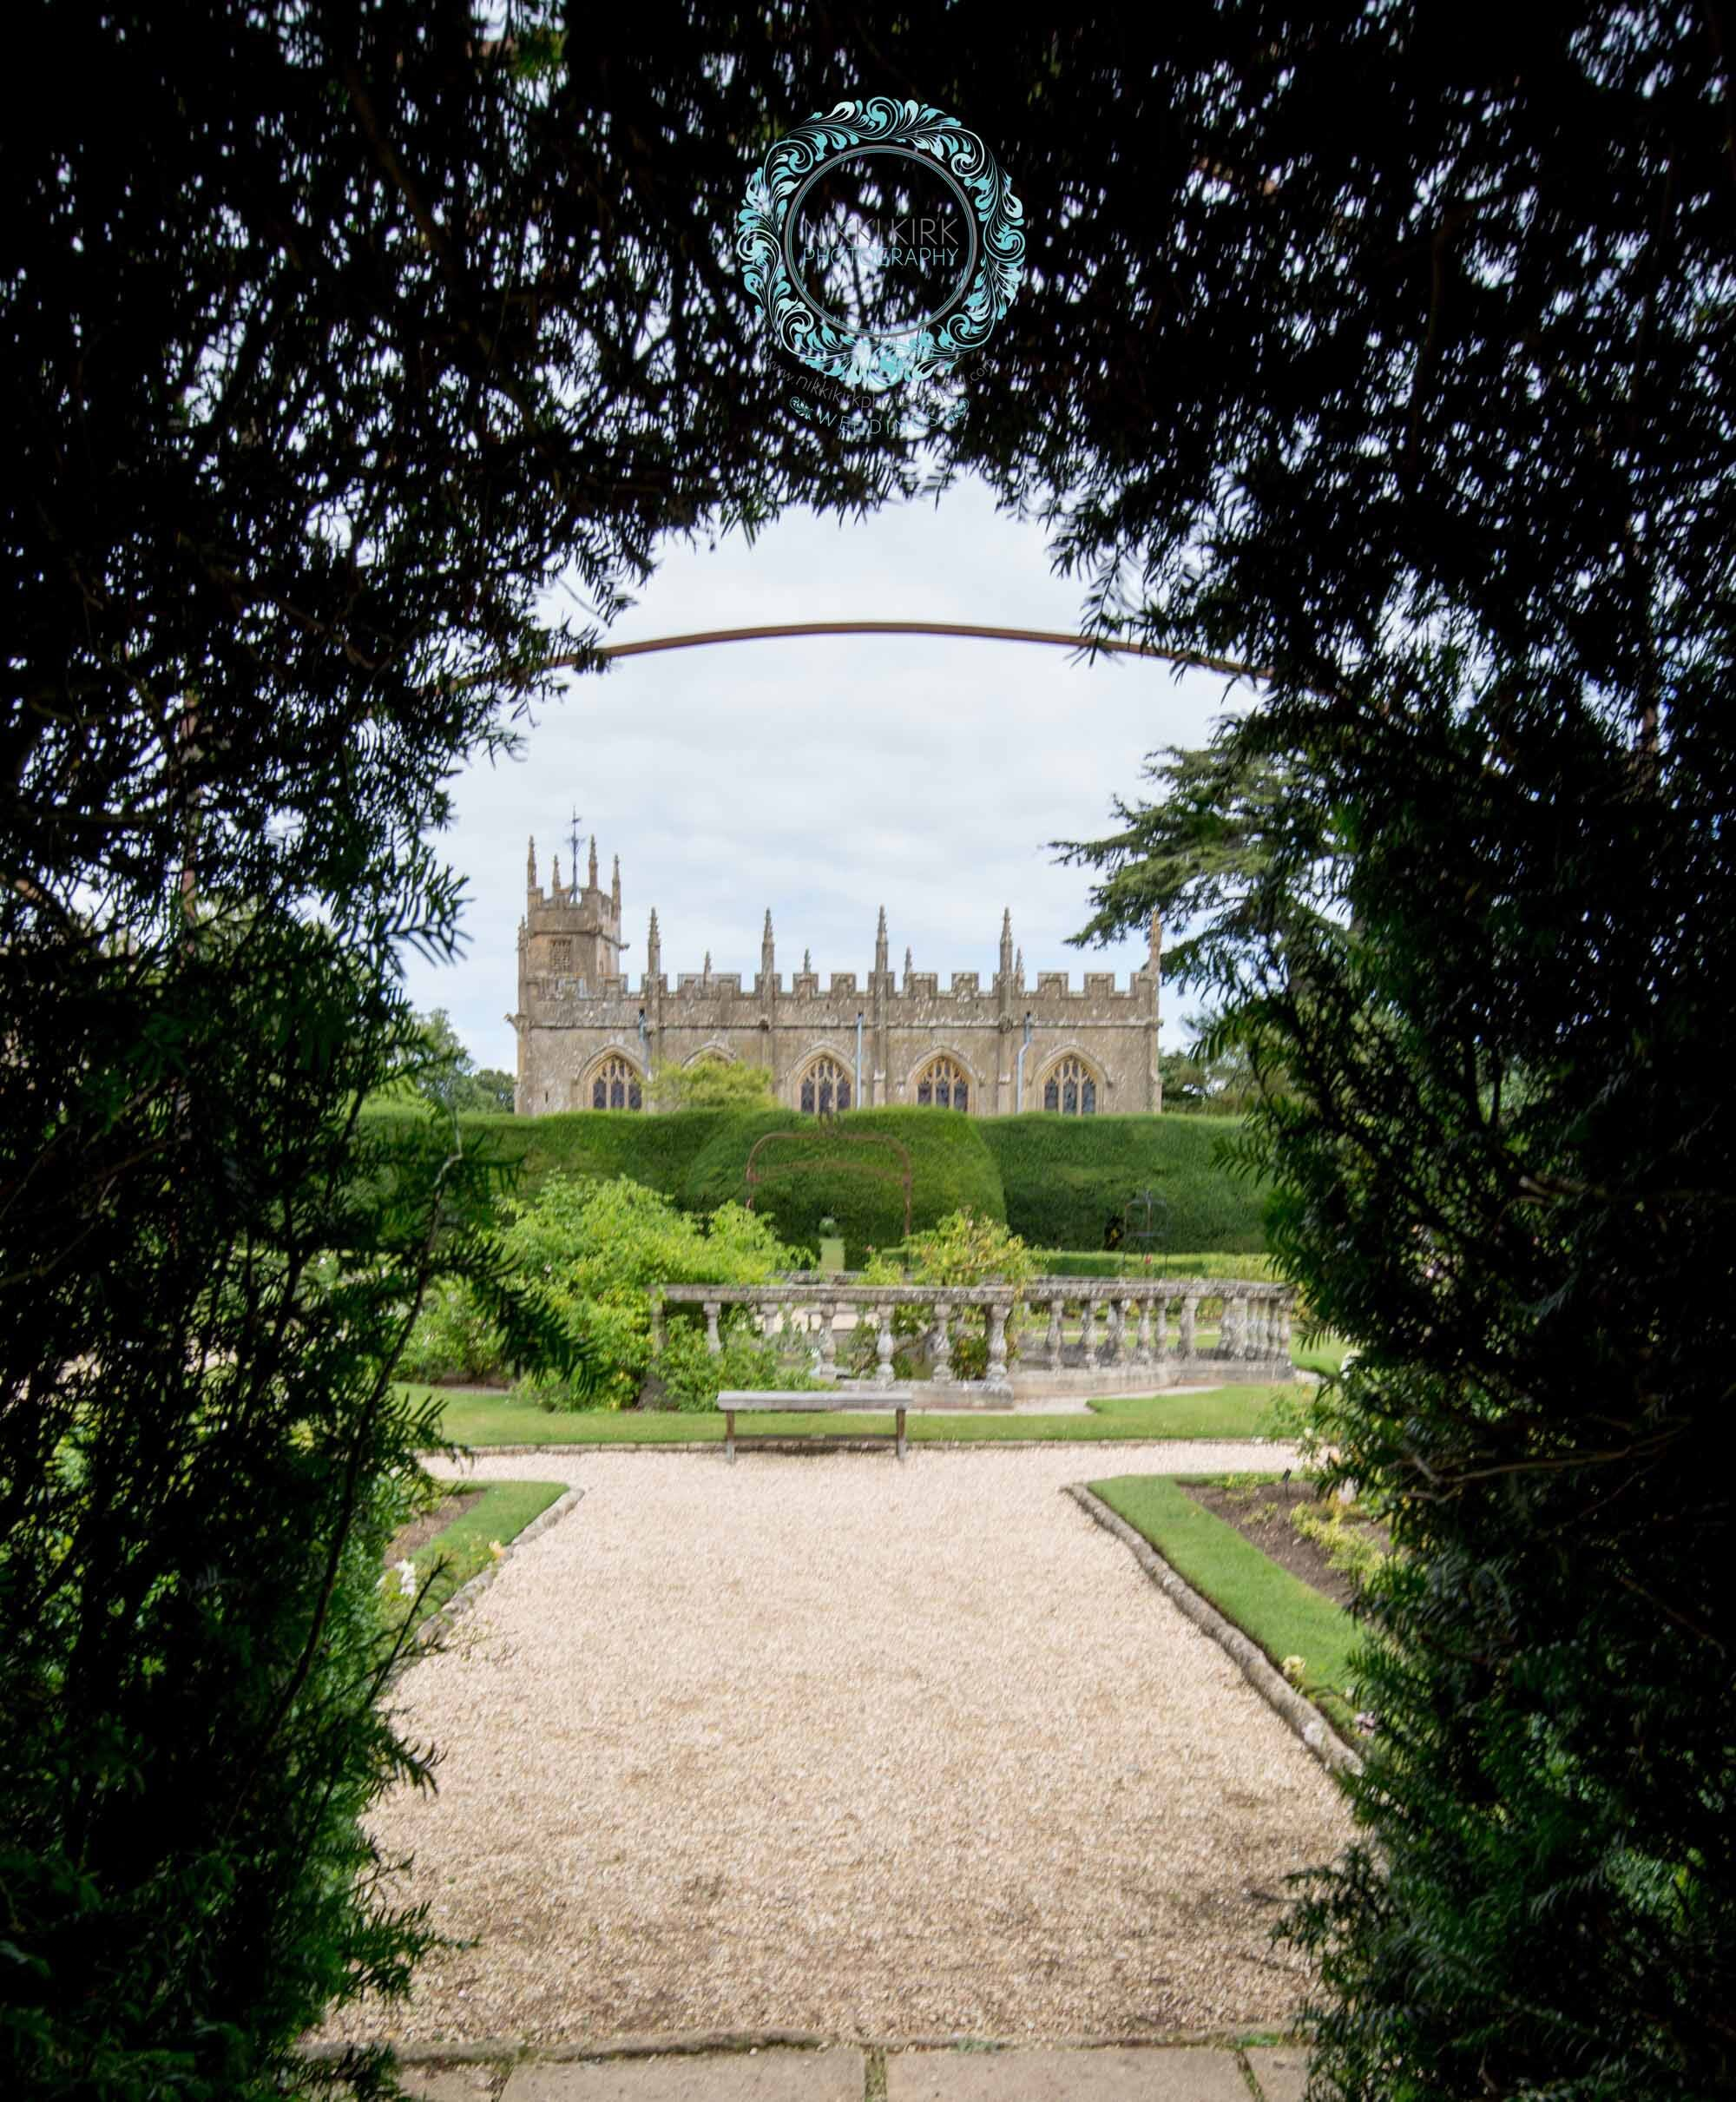 Sudeley-Castle-Cotswolds-婚礼奖-获奖-婚礼策划师-Perfect-Perfection-02a.jpg